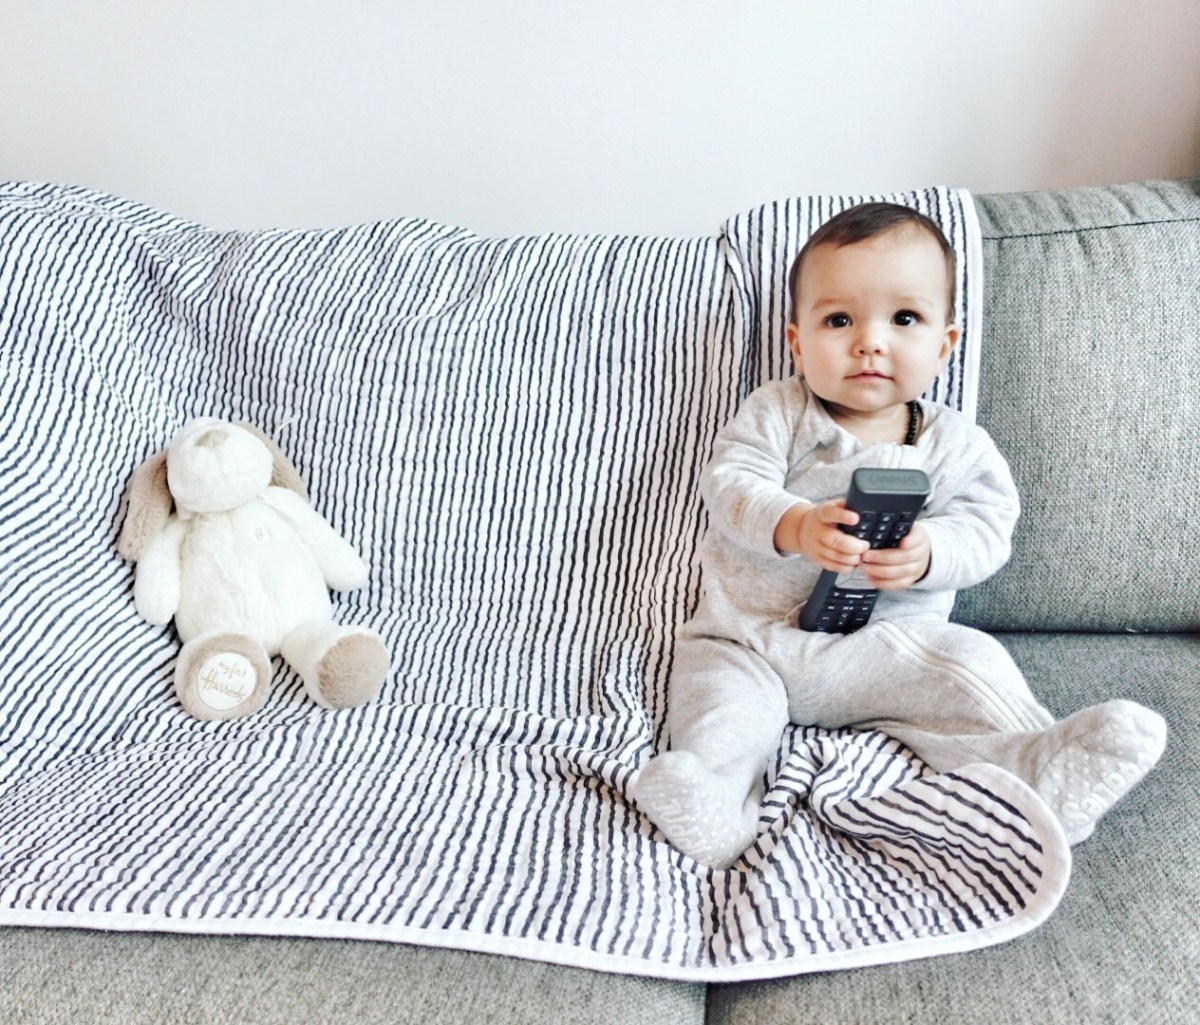 Baby loves the remote control